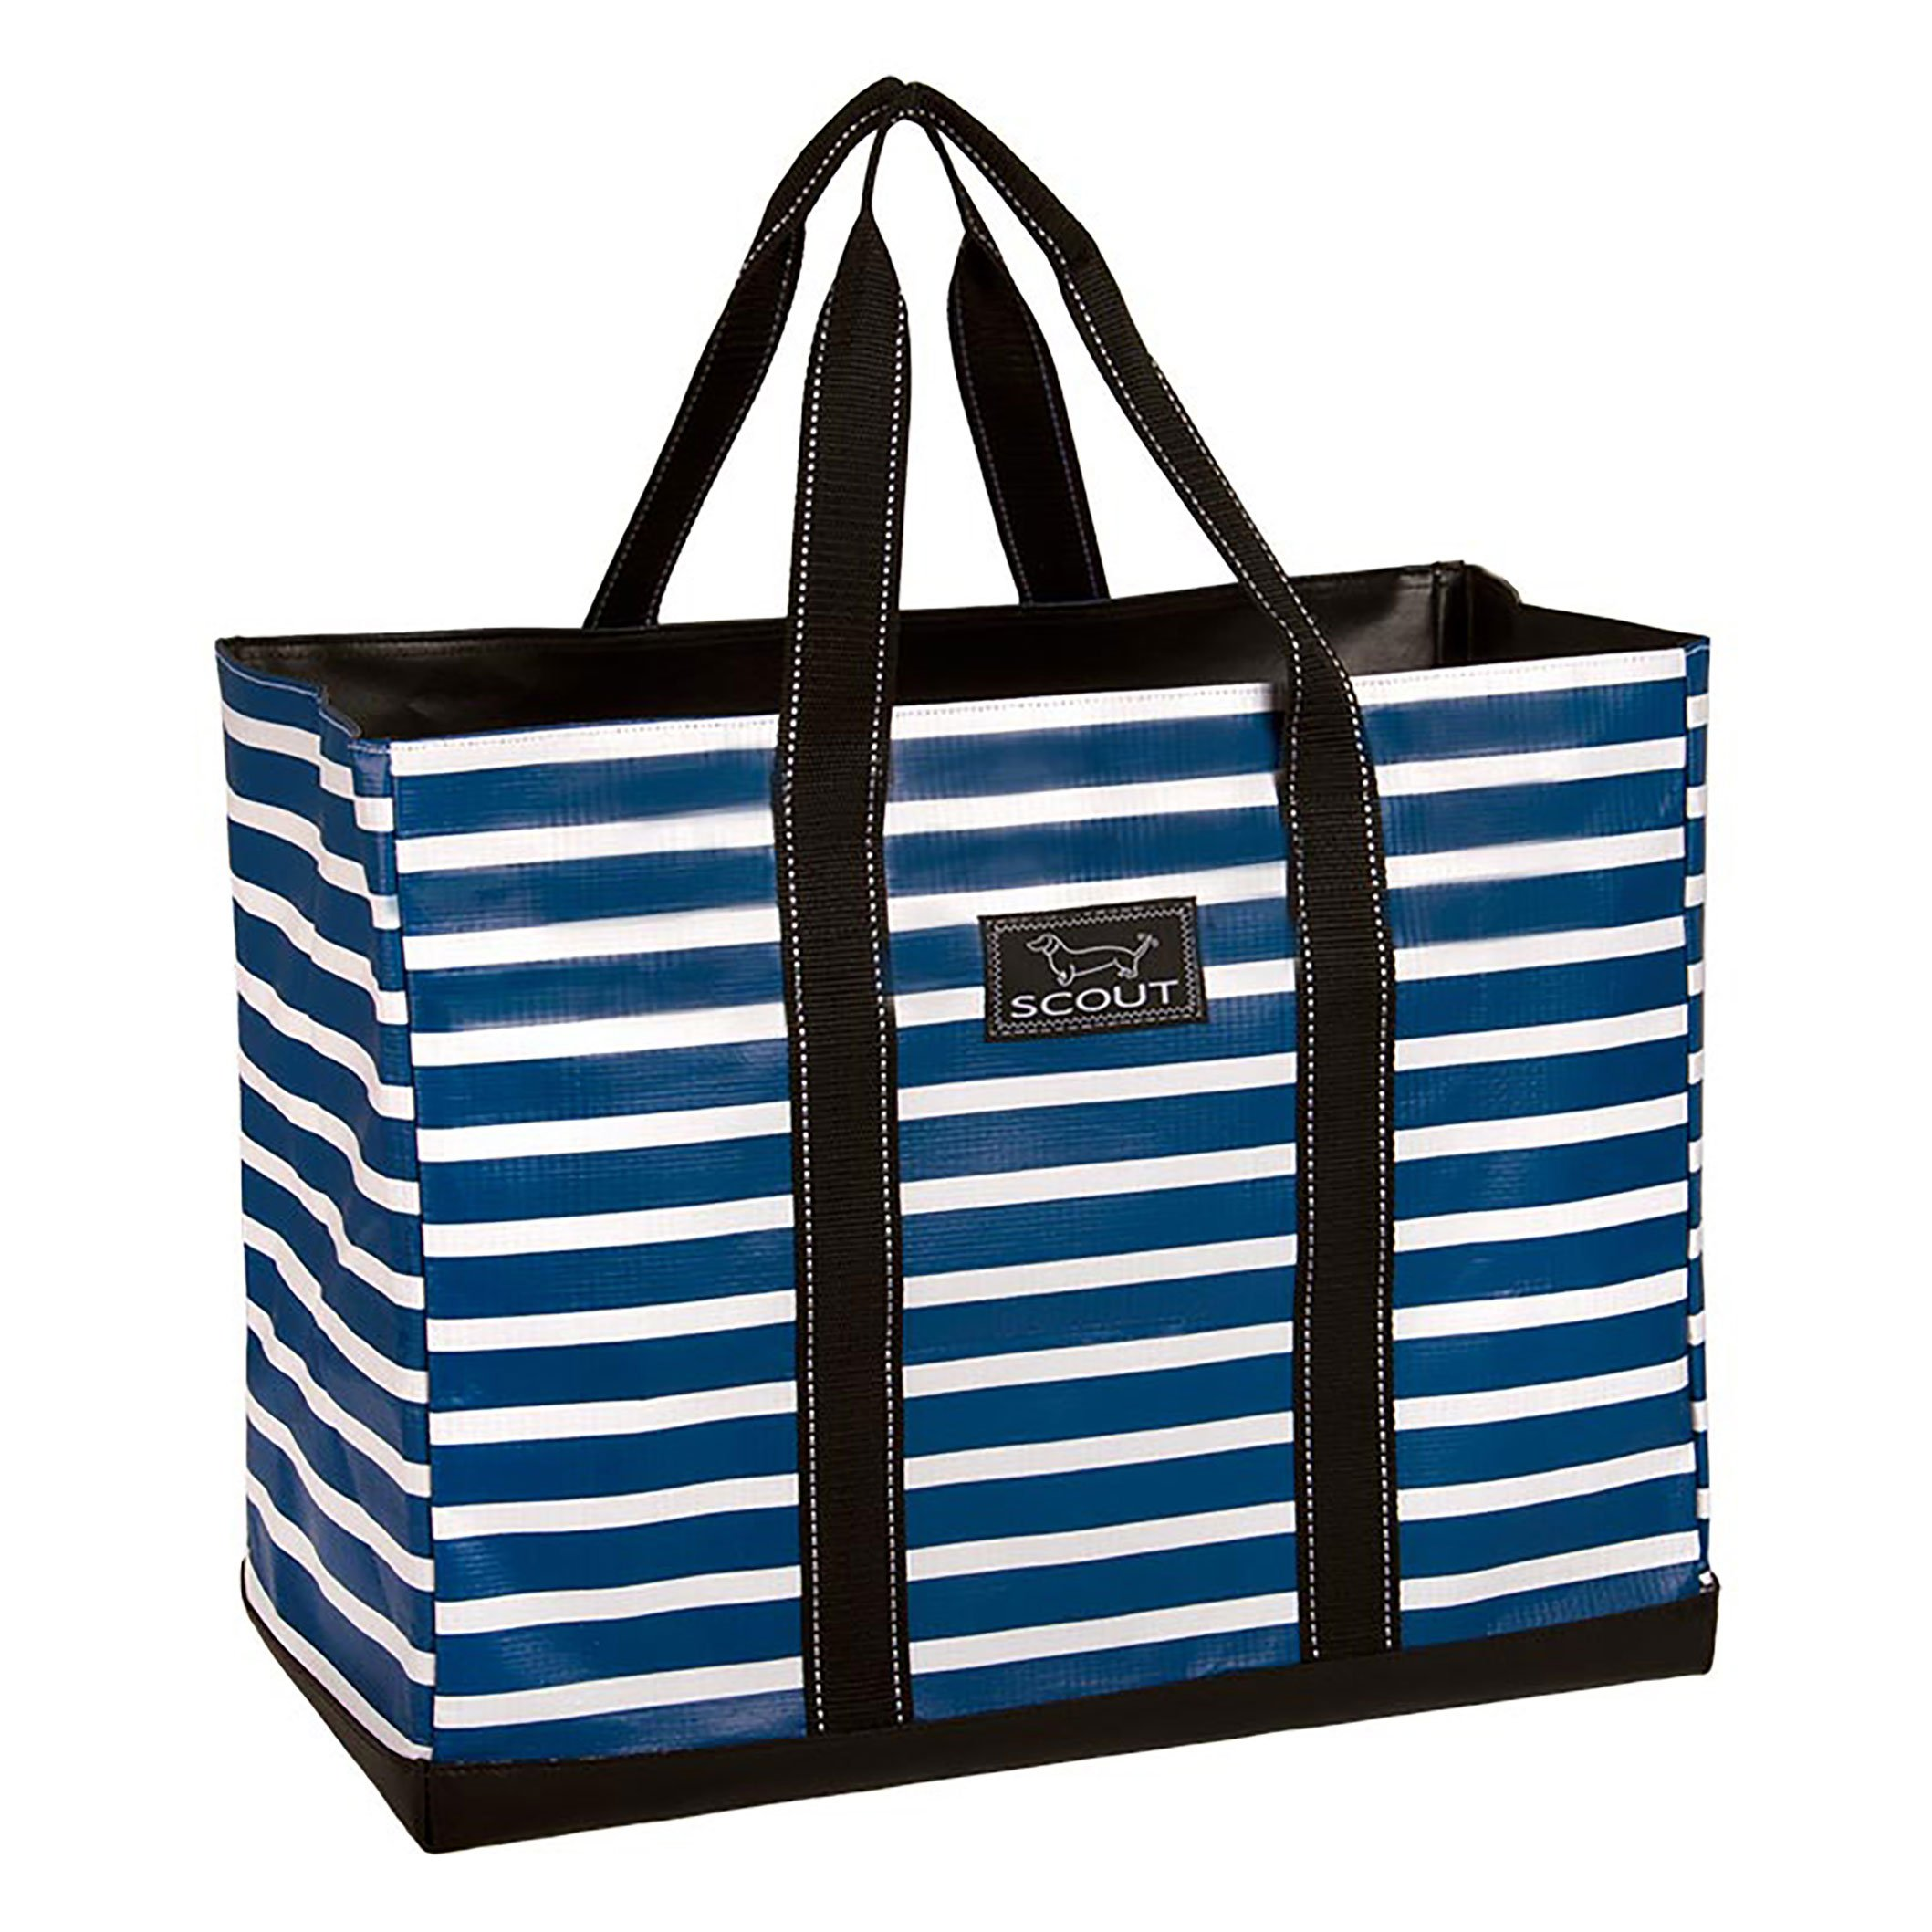 SCOUT Original Deano Large Tote Bag, For The Beach, Pool or Travel, Folds Flat, Water Resistant, Sturdy Base, Interior Key Ring, Nantucket Navy